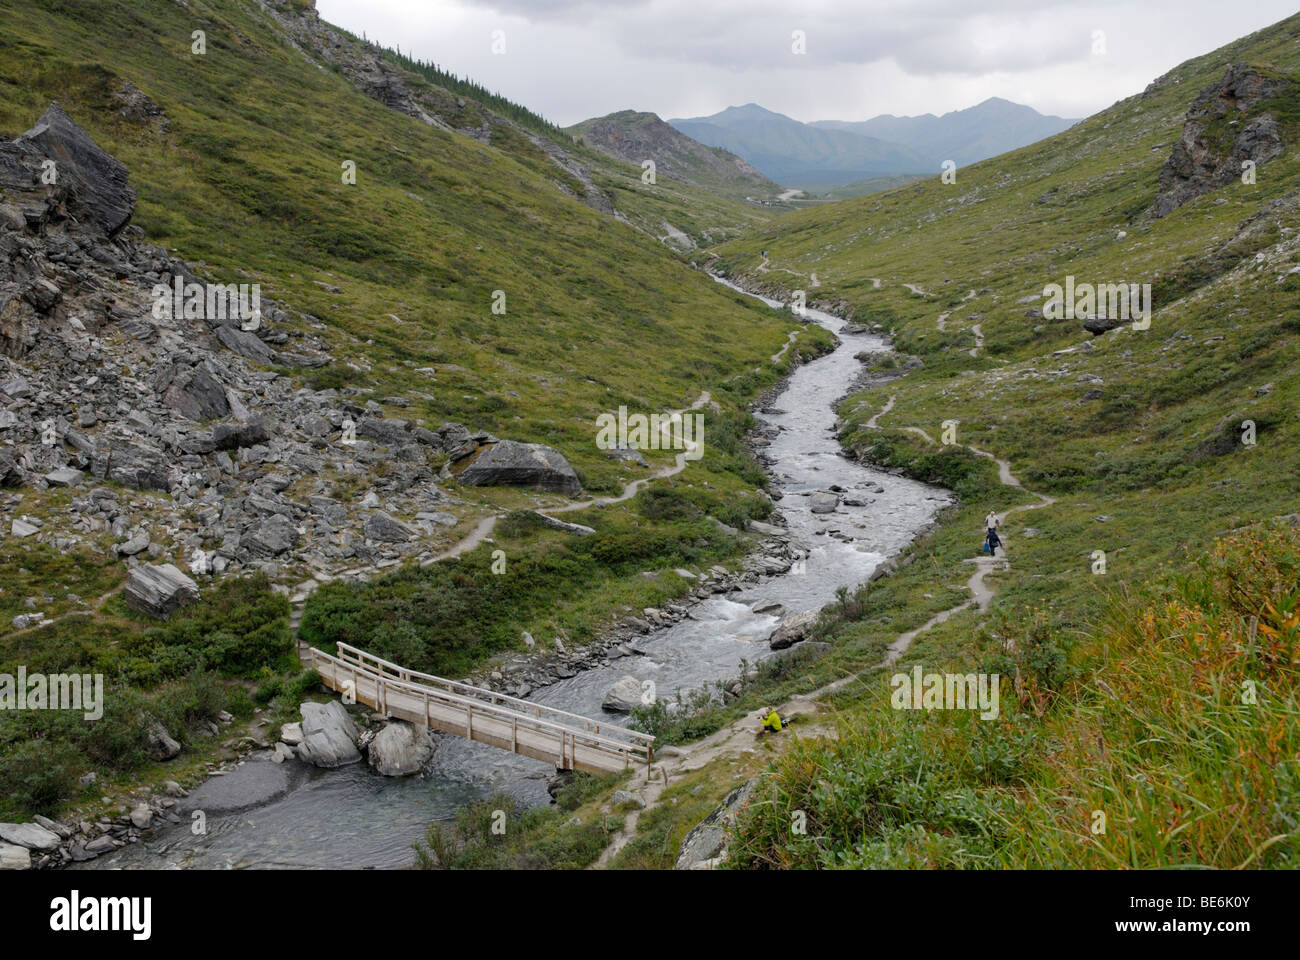 Savage River, with hiking trails, Denali National Park - Stock Image